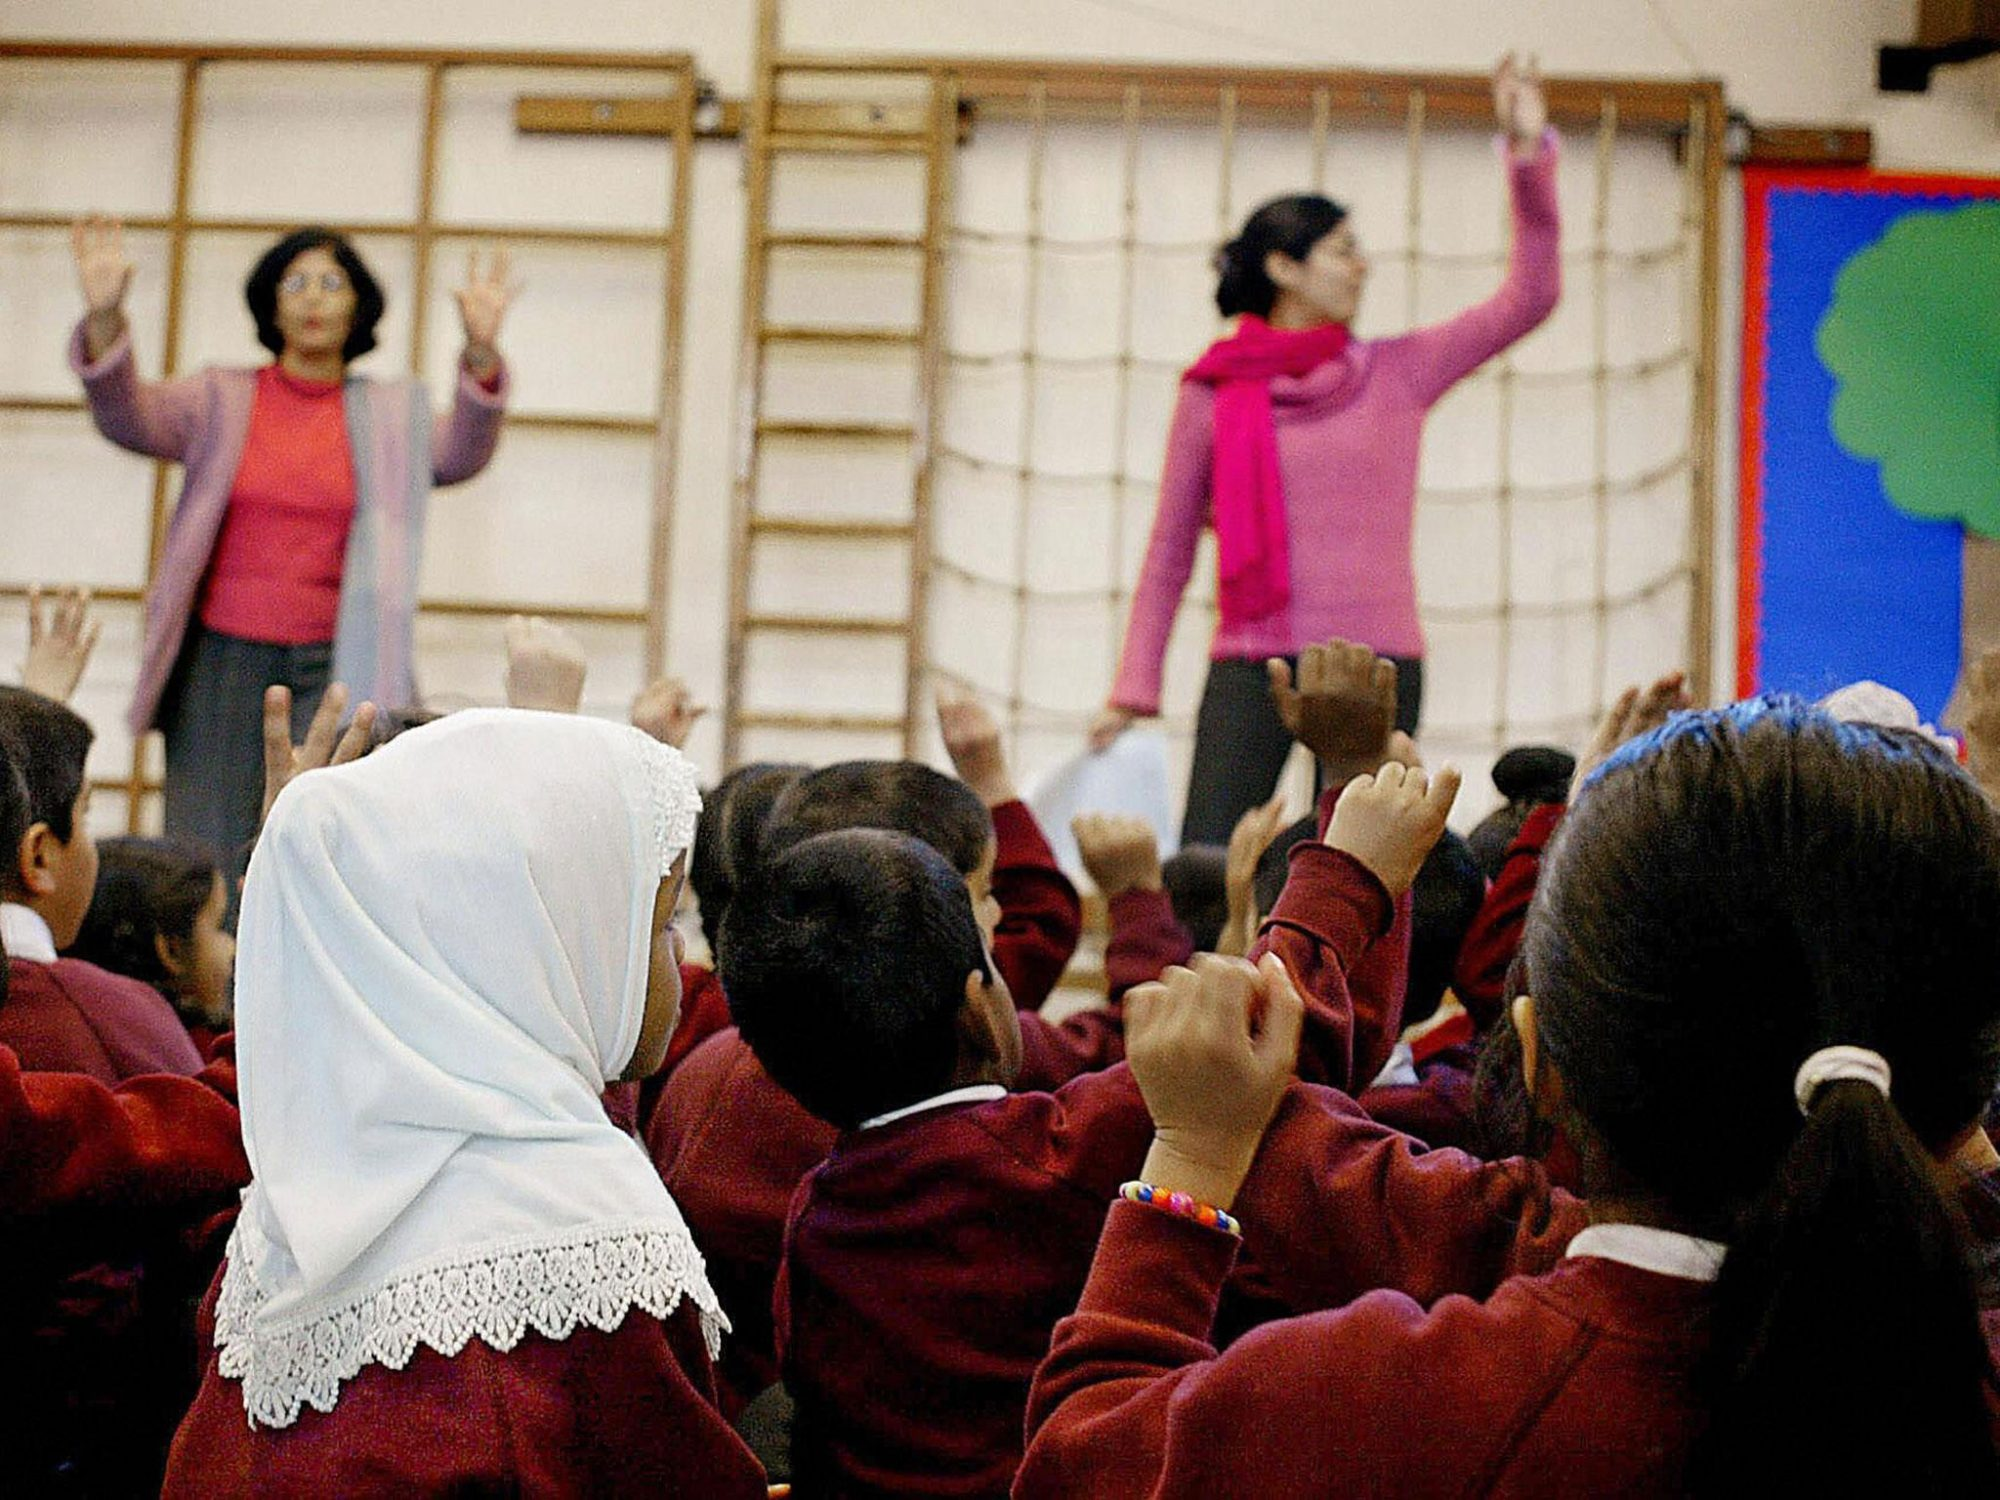 Banning hijab in schools: a breach of religious and cultural rights